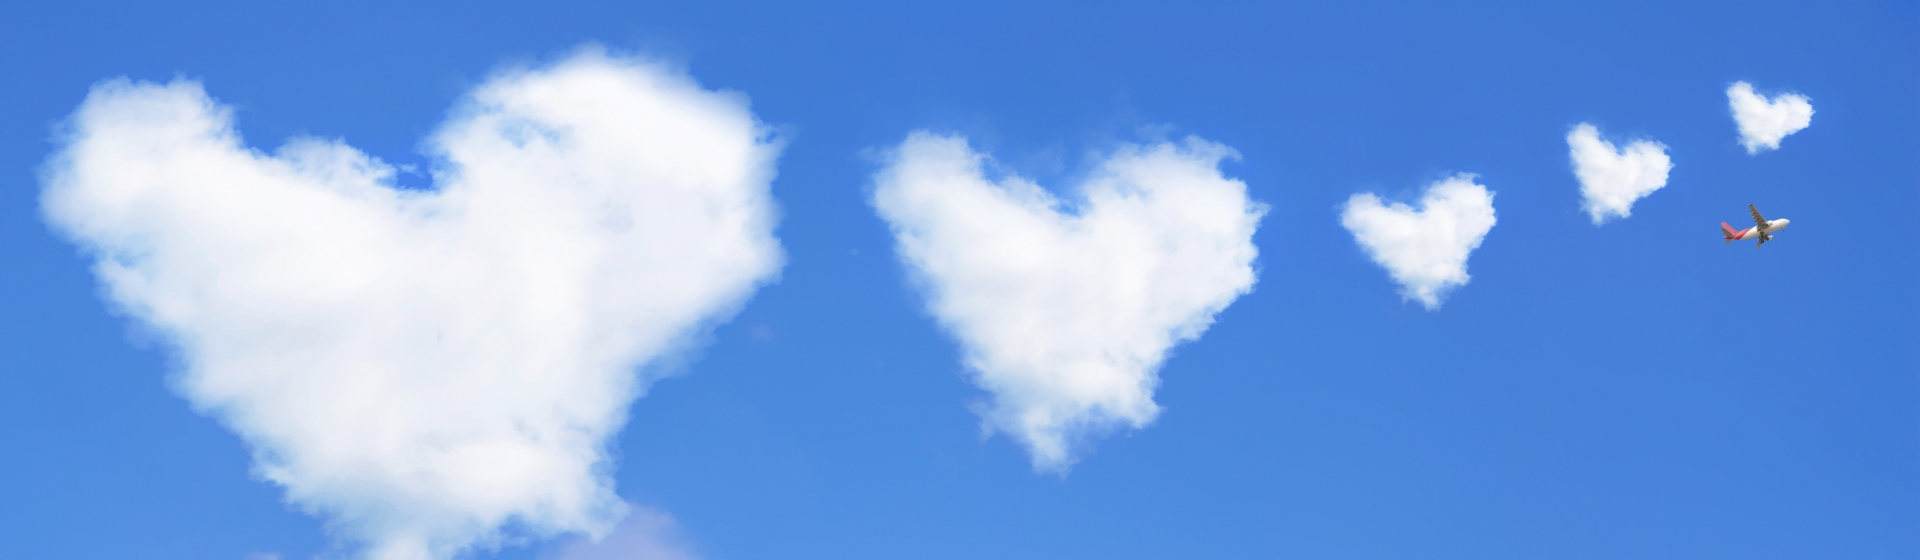 Heart shaped clouds.